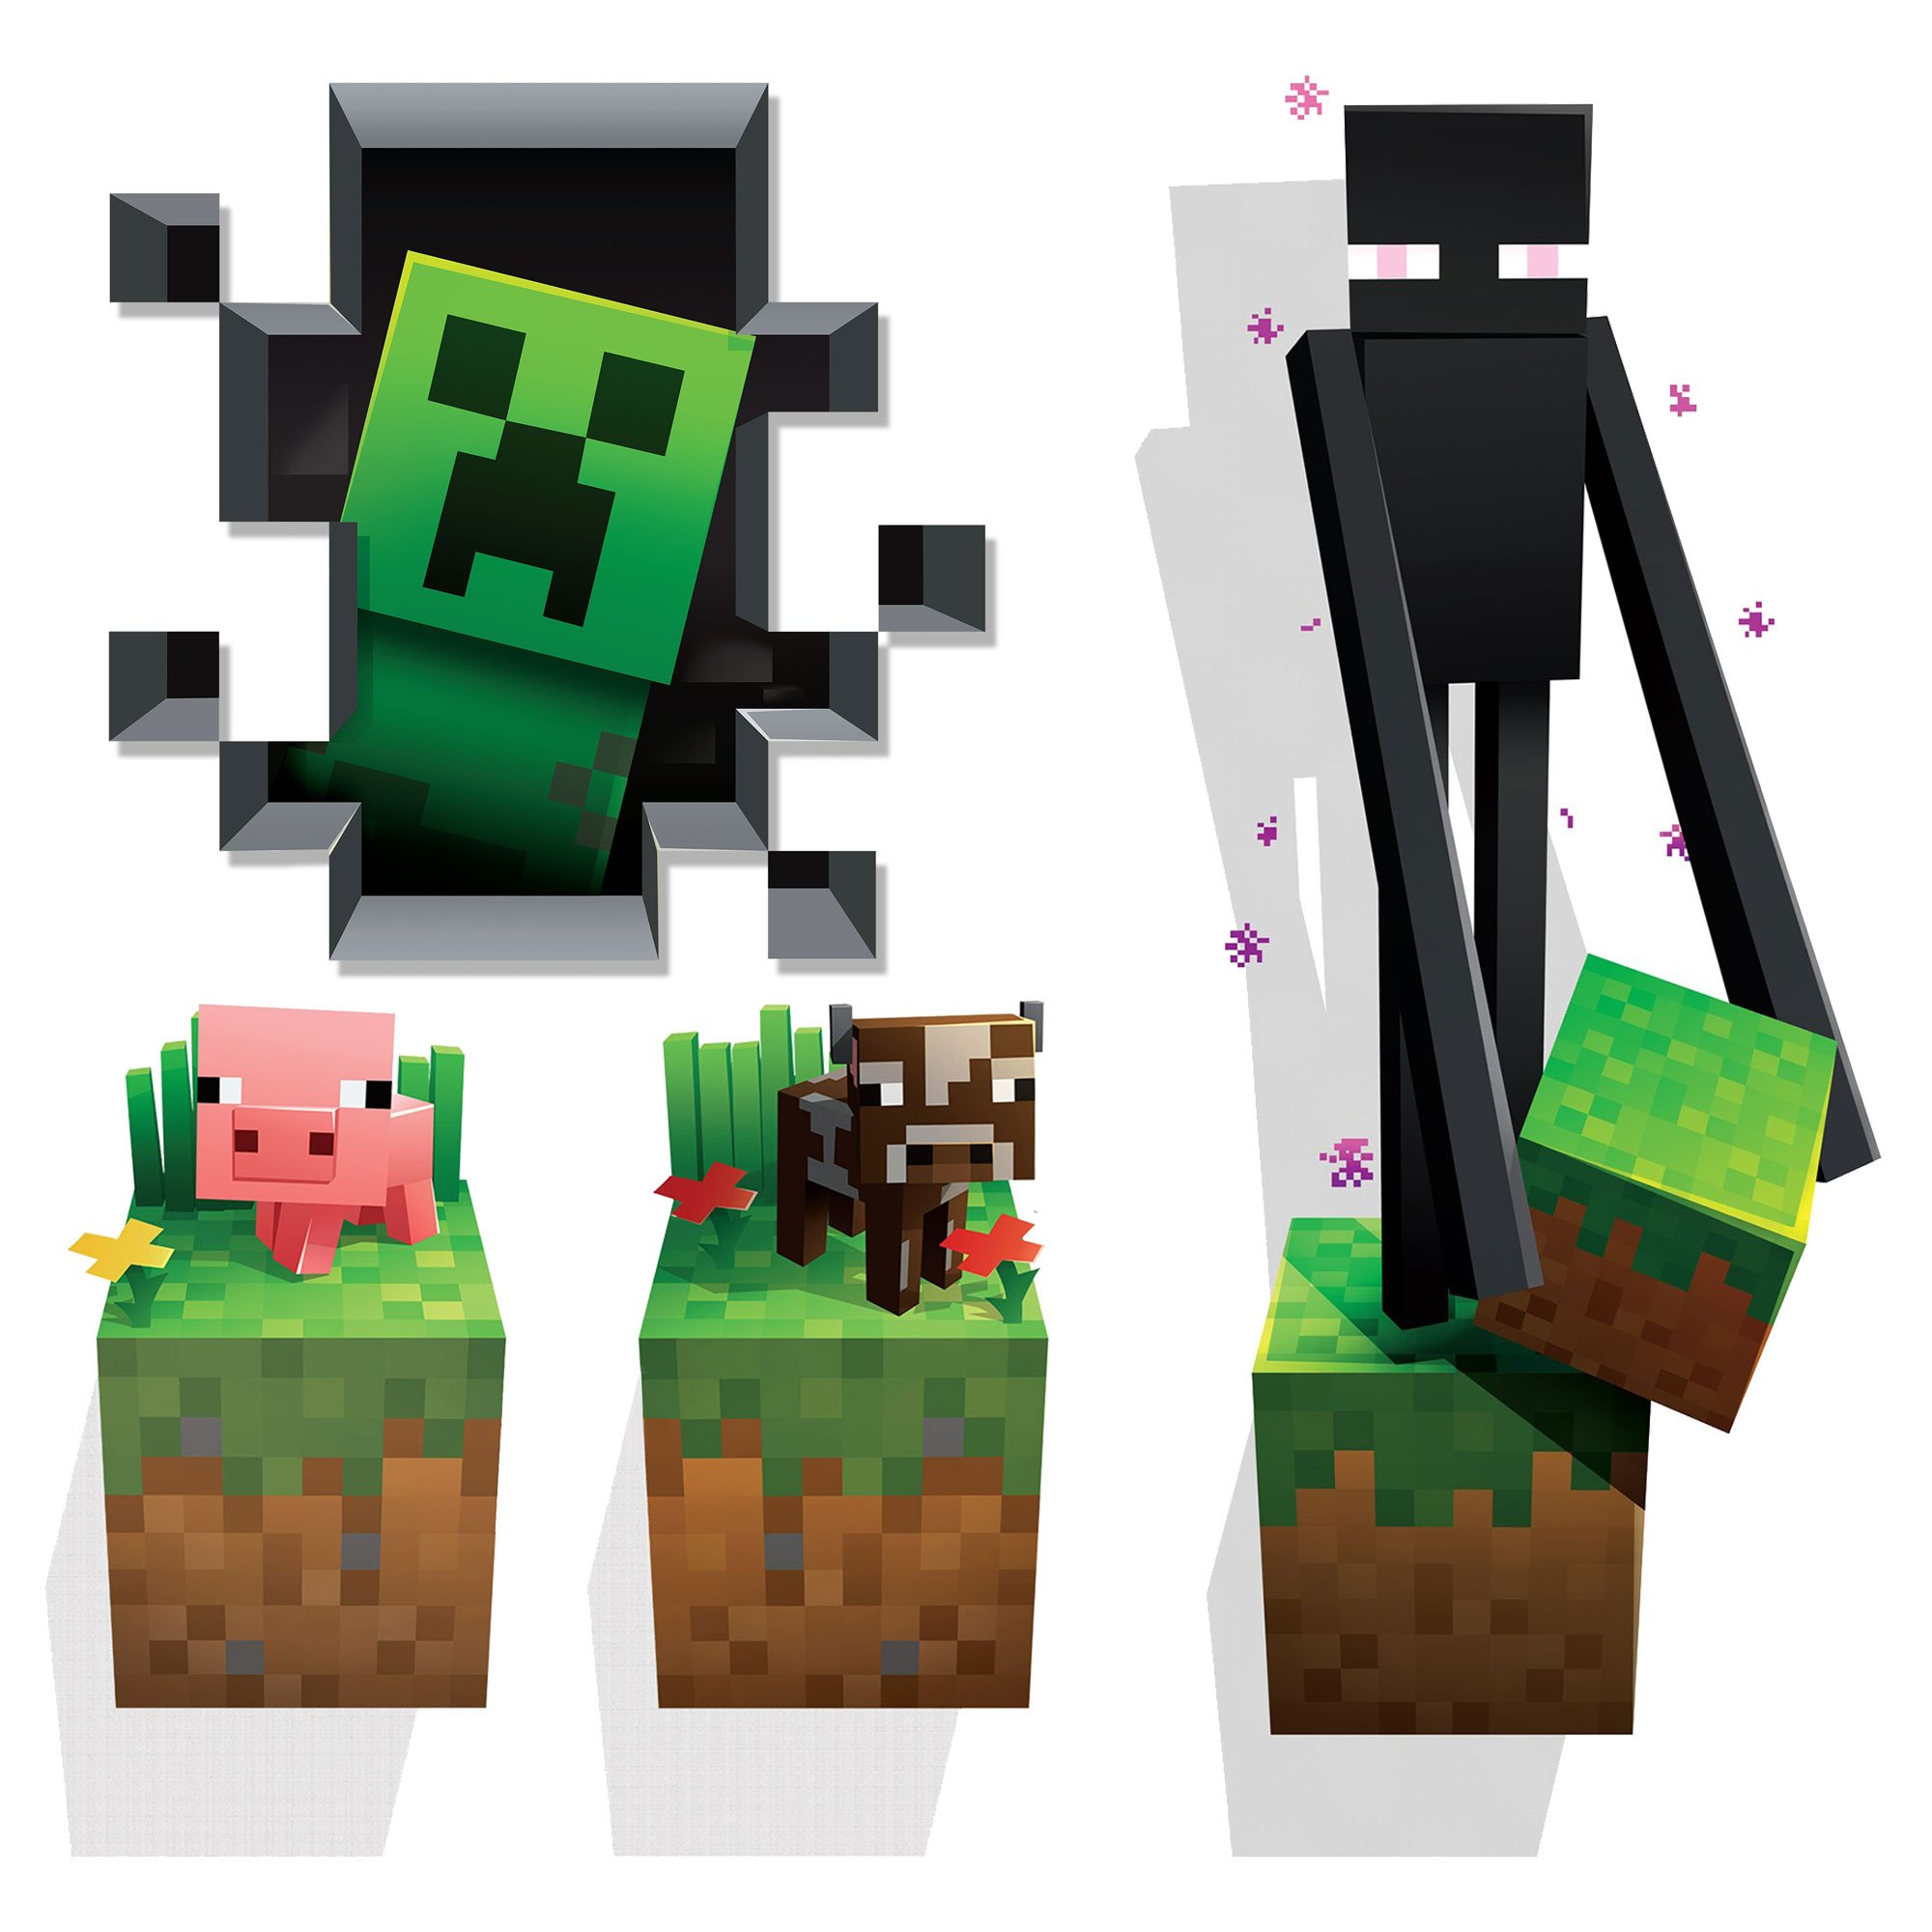 JINX Minecraft Wall Cling Decal Set (Creeper, Enderman, Pig, Cow) by JINX (Image #1)